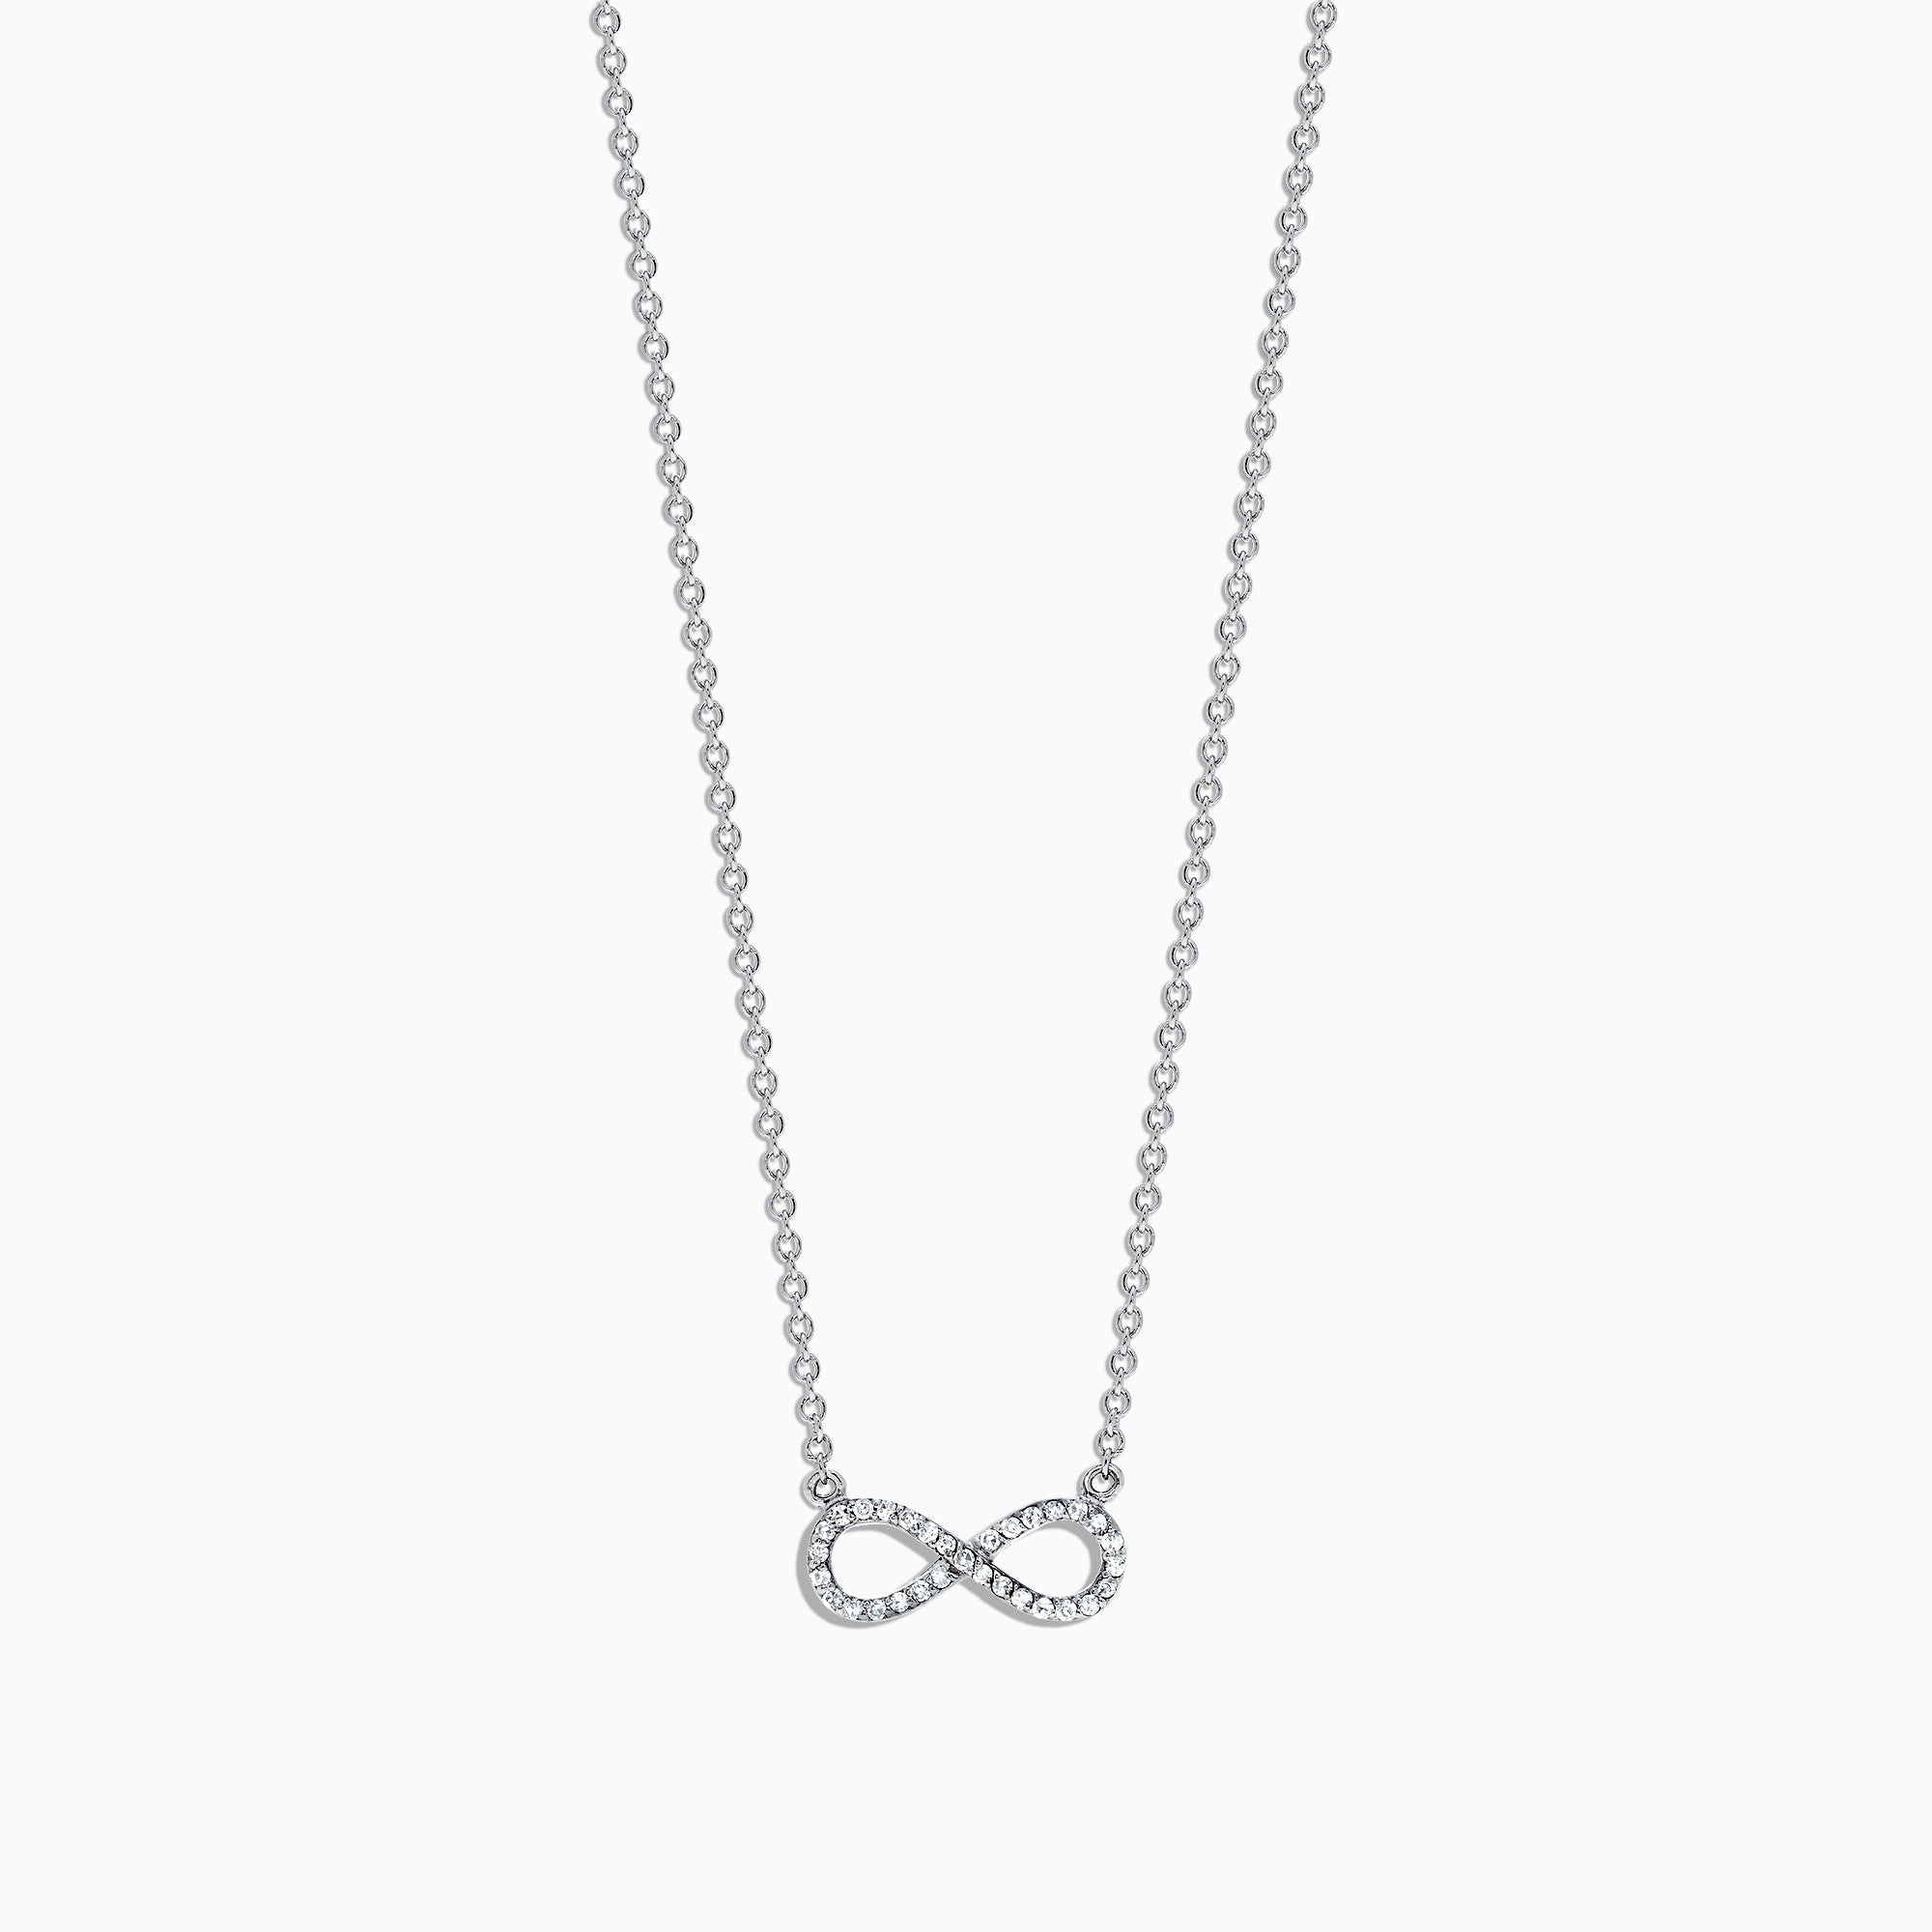 Effy Novelty 14K White Gold Diamond Infinity Necklace, 0.09 TCW